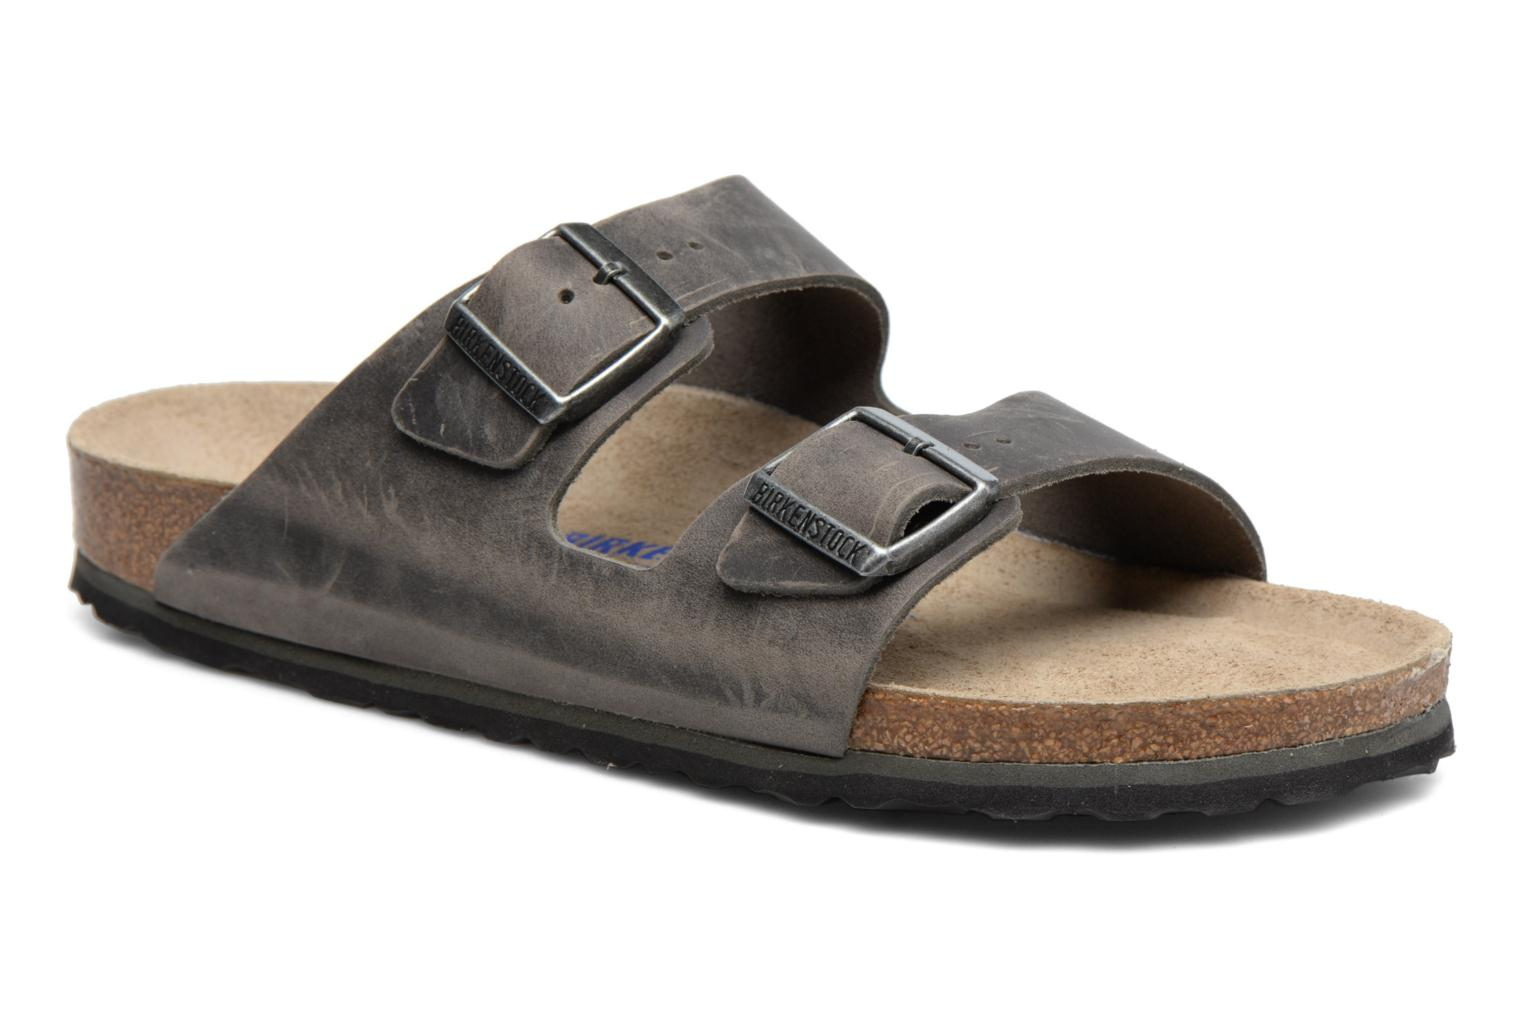 Arizona Artic Old iron Soft Footbed